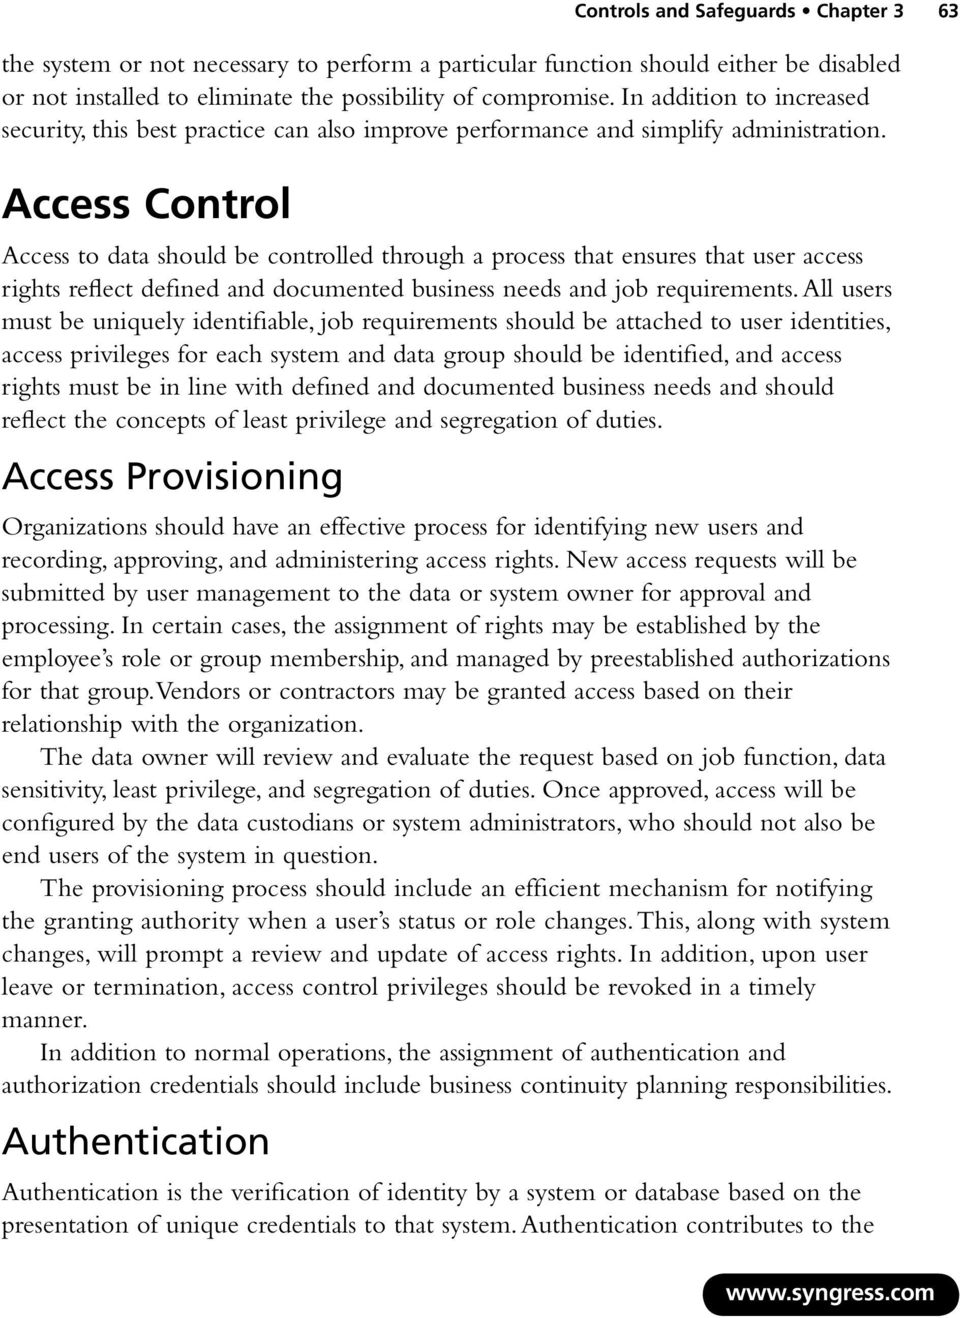 Access Control Access to data should be controlled through a process that ensures that user access rights reflect defined and documented business needs and job requirements.